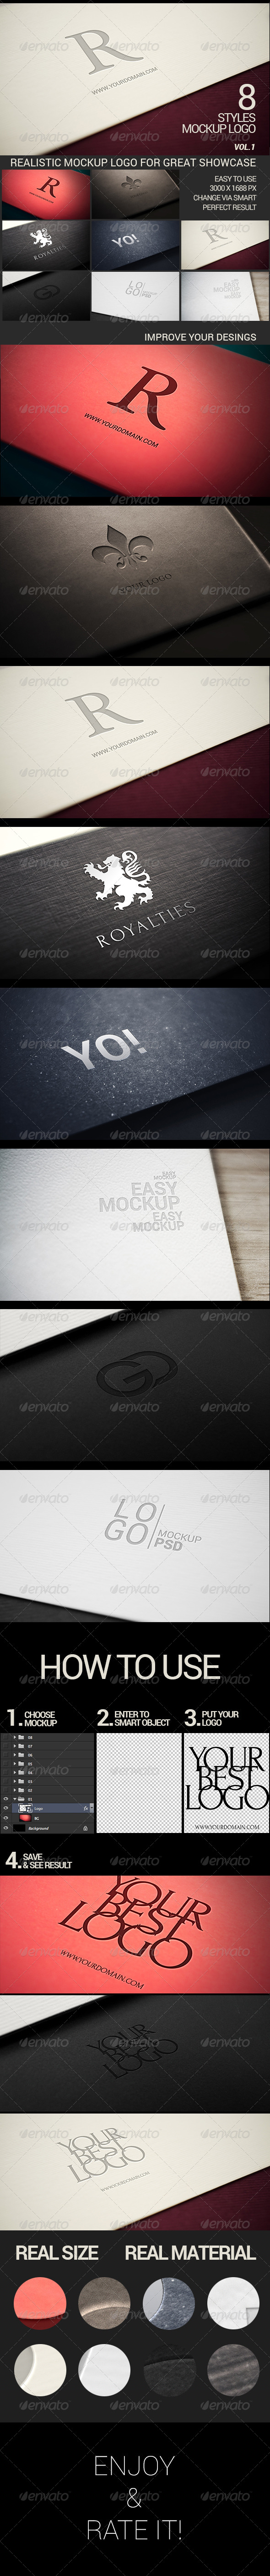 GraphicRiver Photorealistic Modern Logo Mock-Up Pack Vol.1 7036421